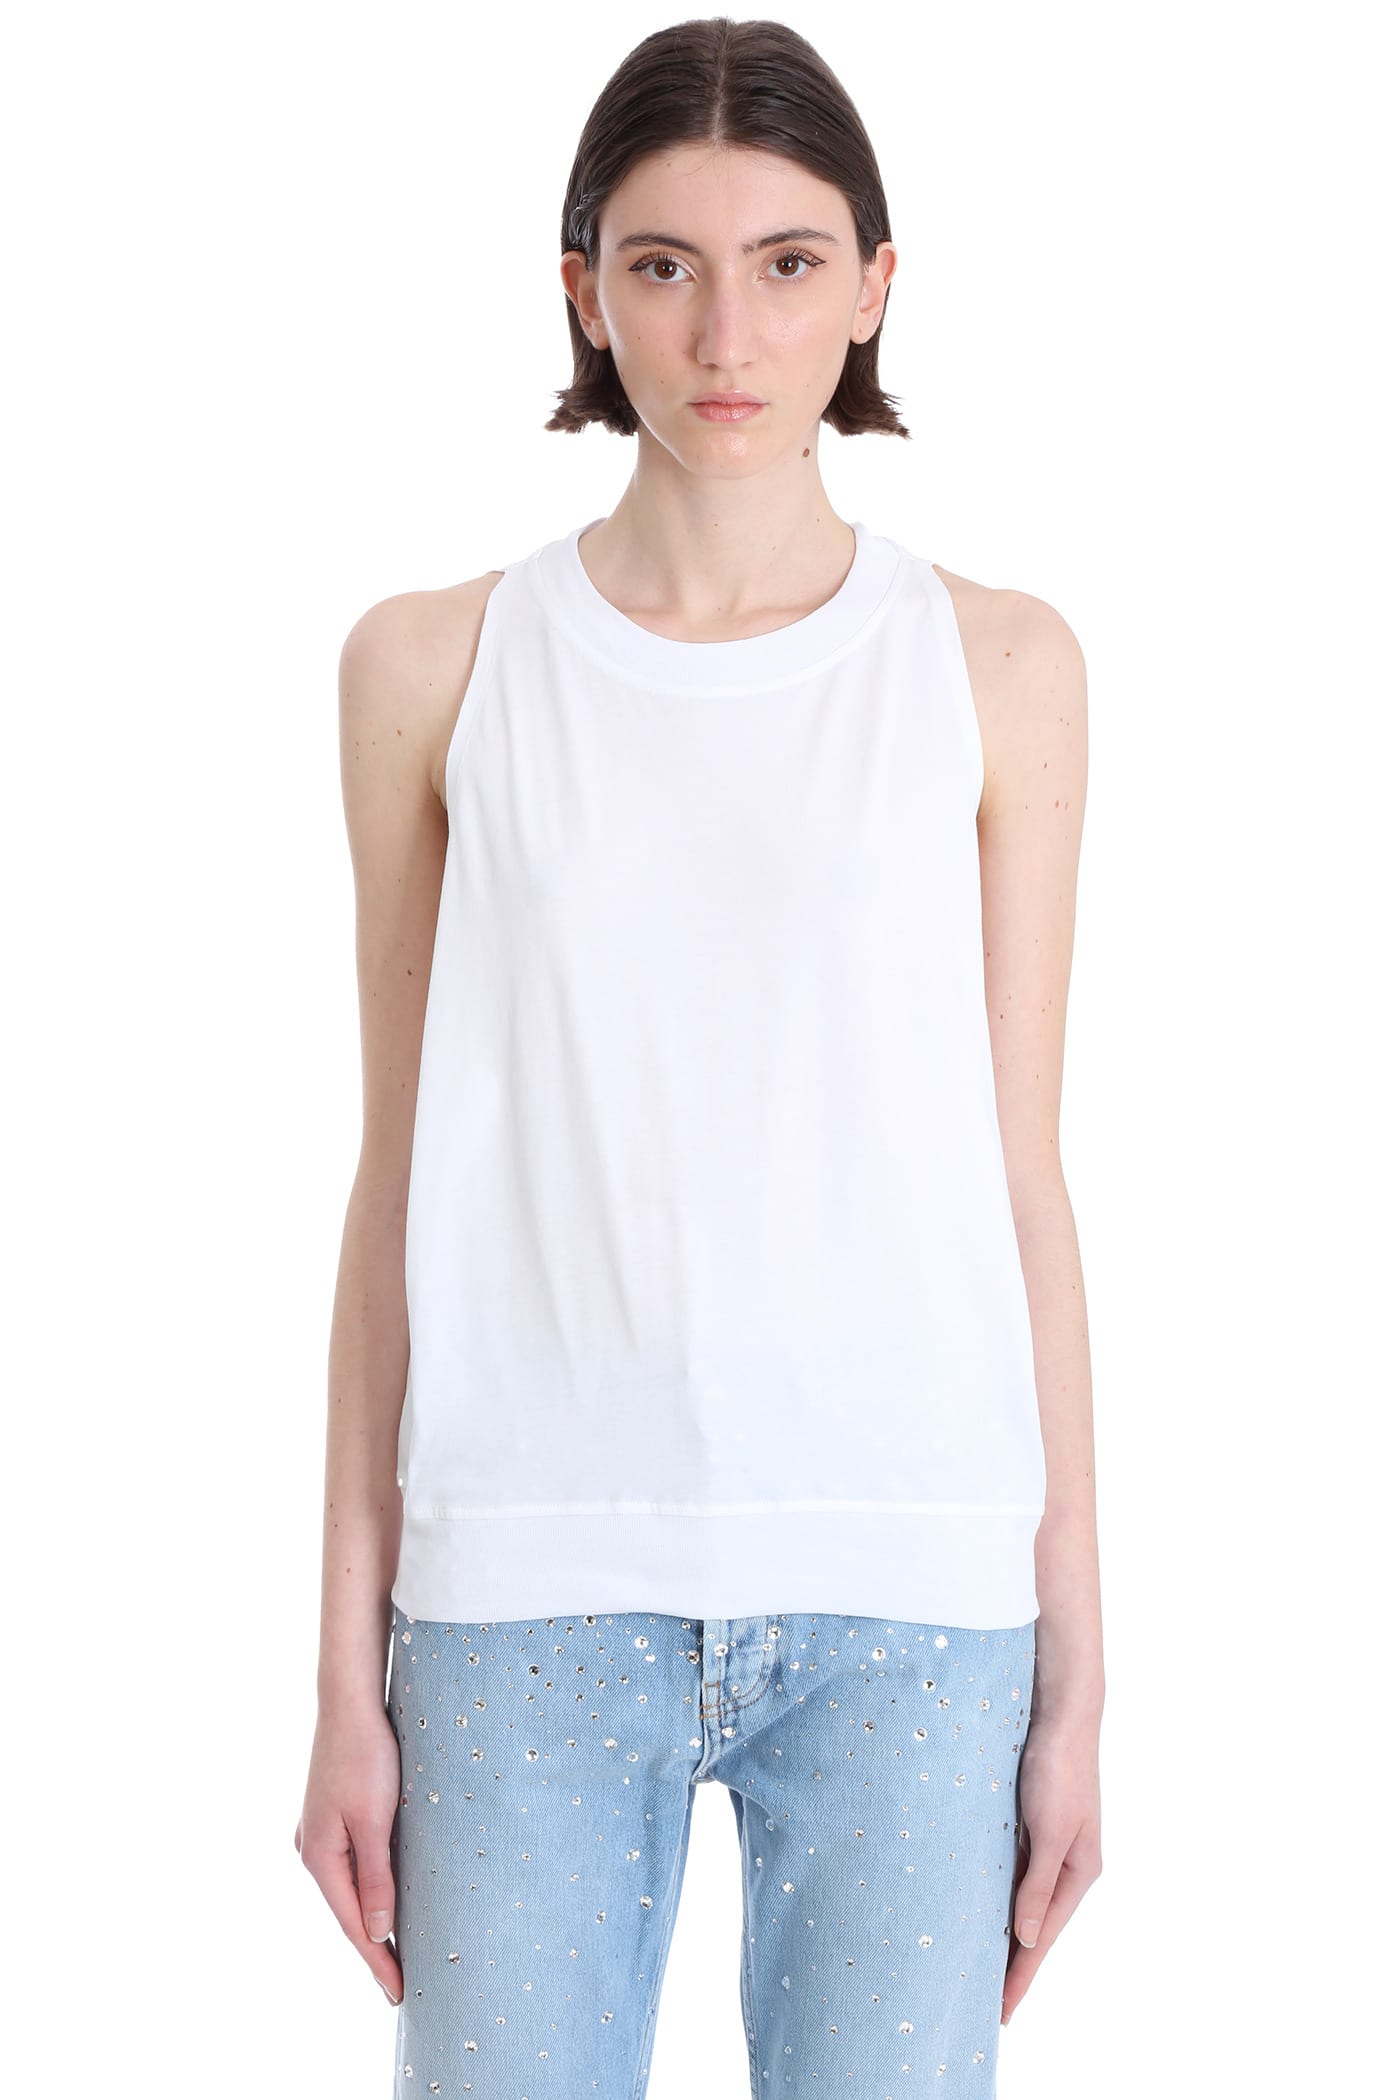 Alexandre Vauthier Tops TOPWEAR IN WHITE COTTON